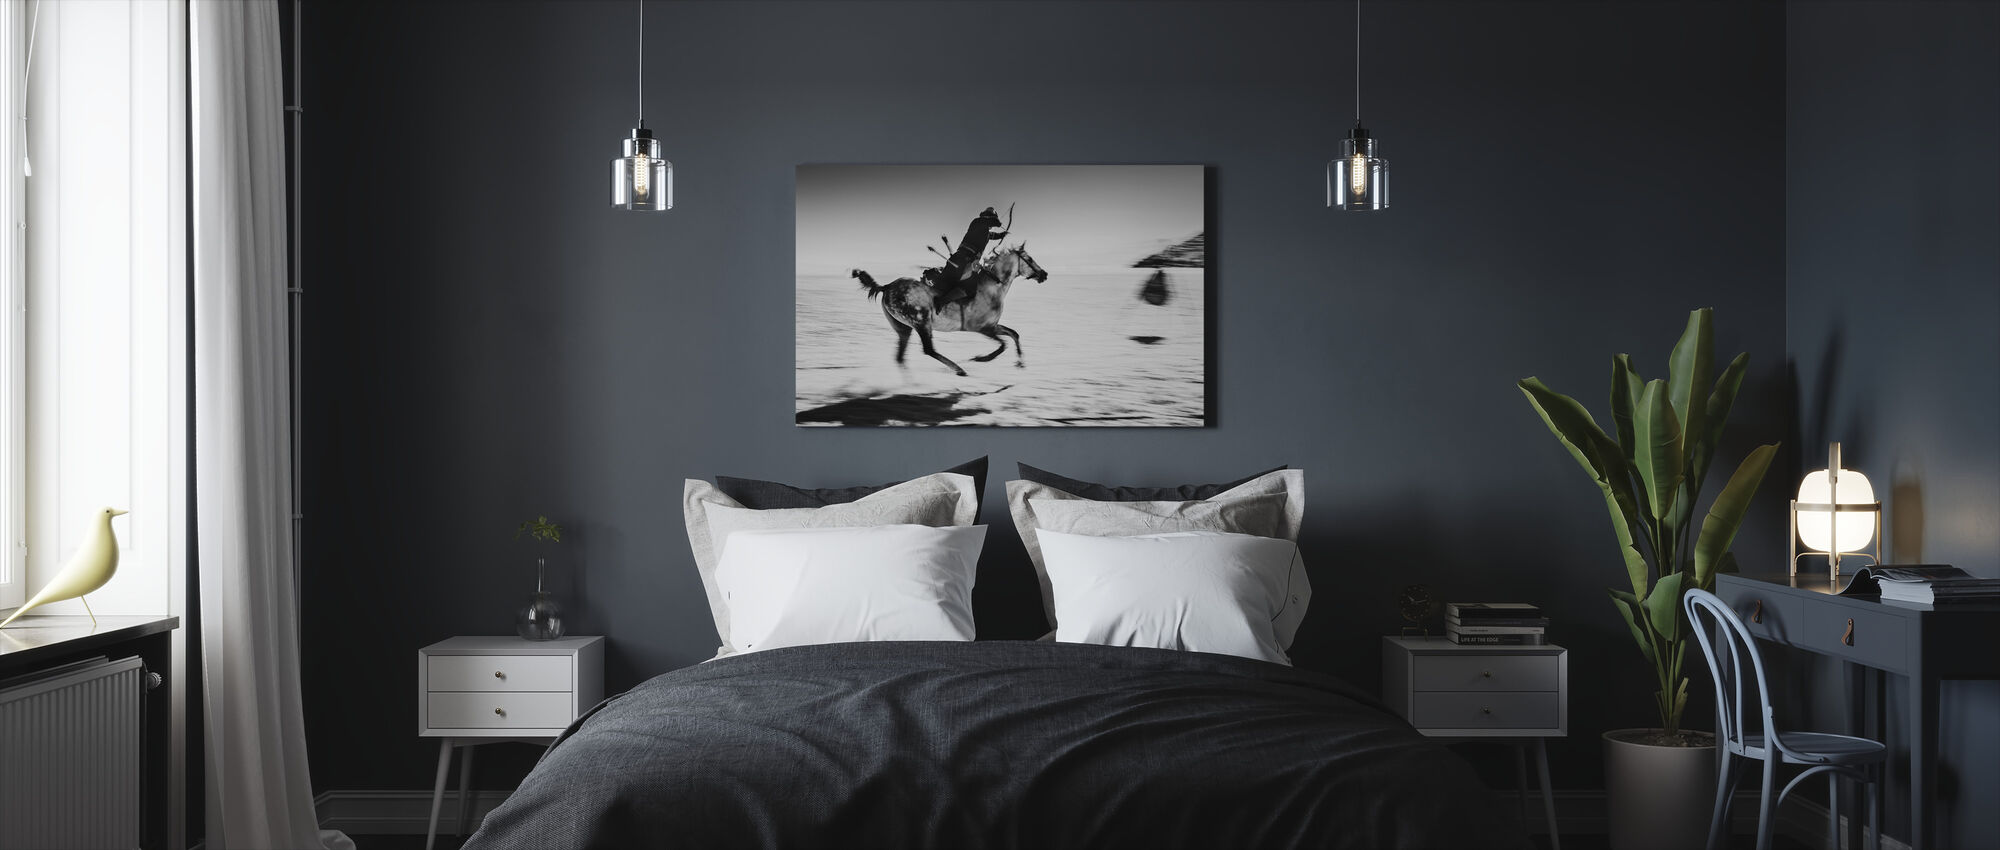 Galopping Horse and Bowman, black and white - Canvas print - Bedroom